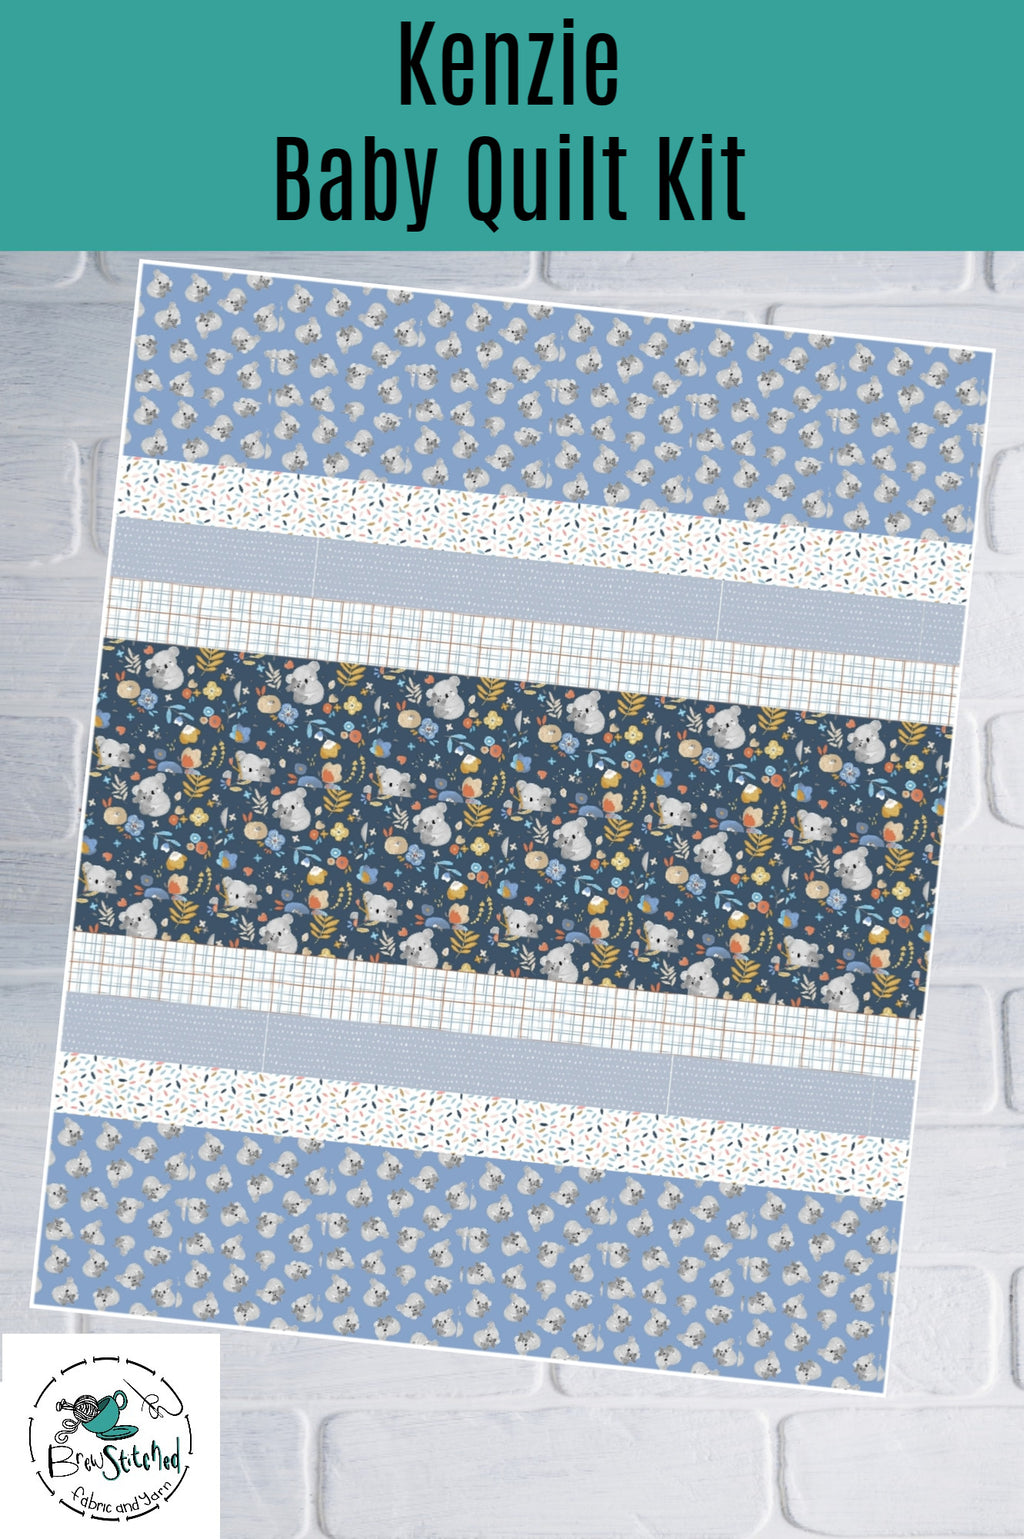 Kenzie Baby Quilt Kit in Blue - brewstitched.com